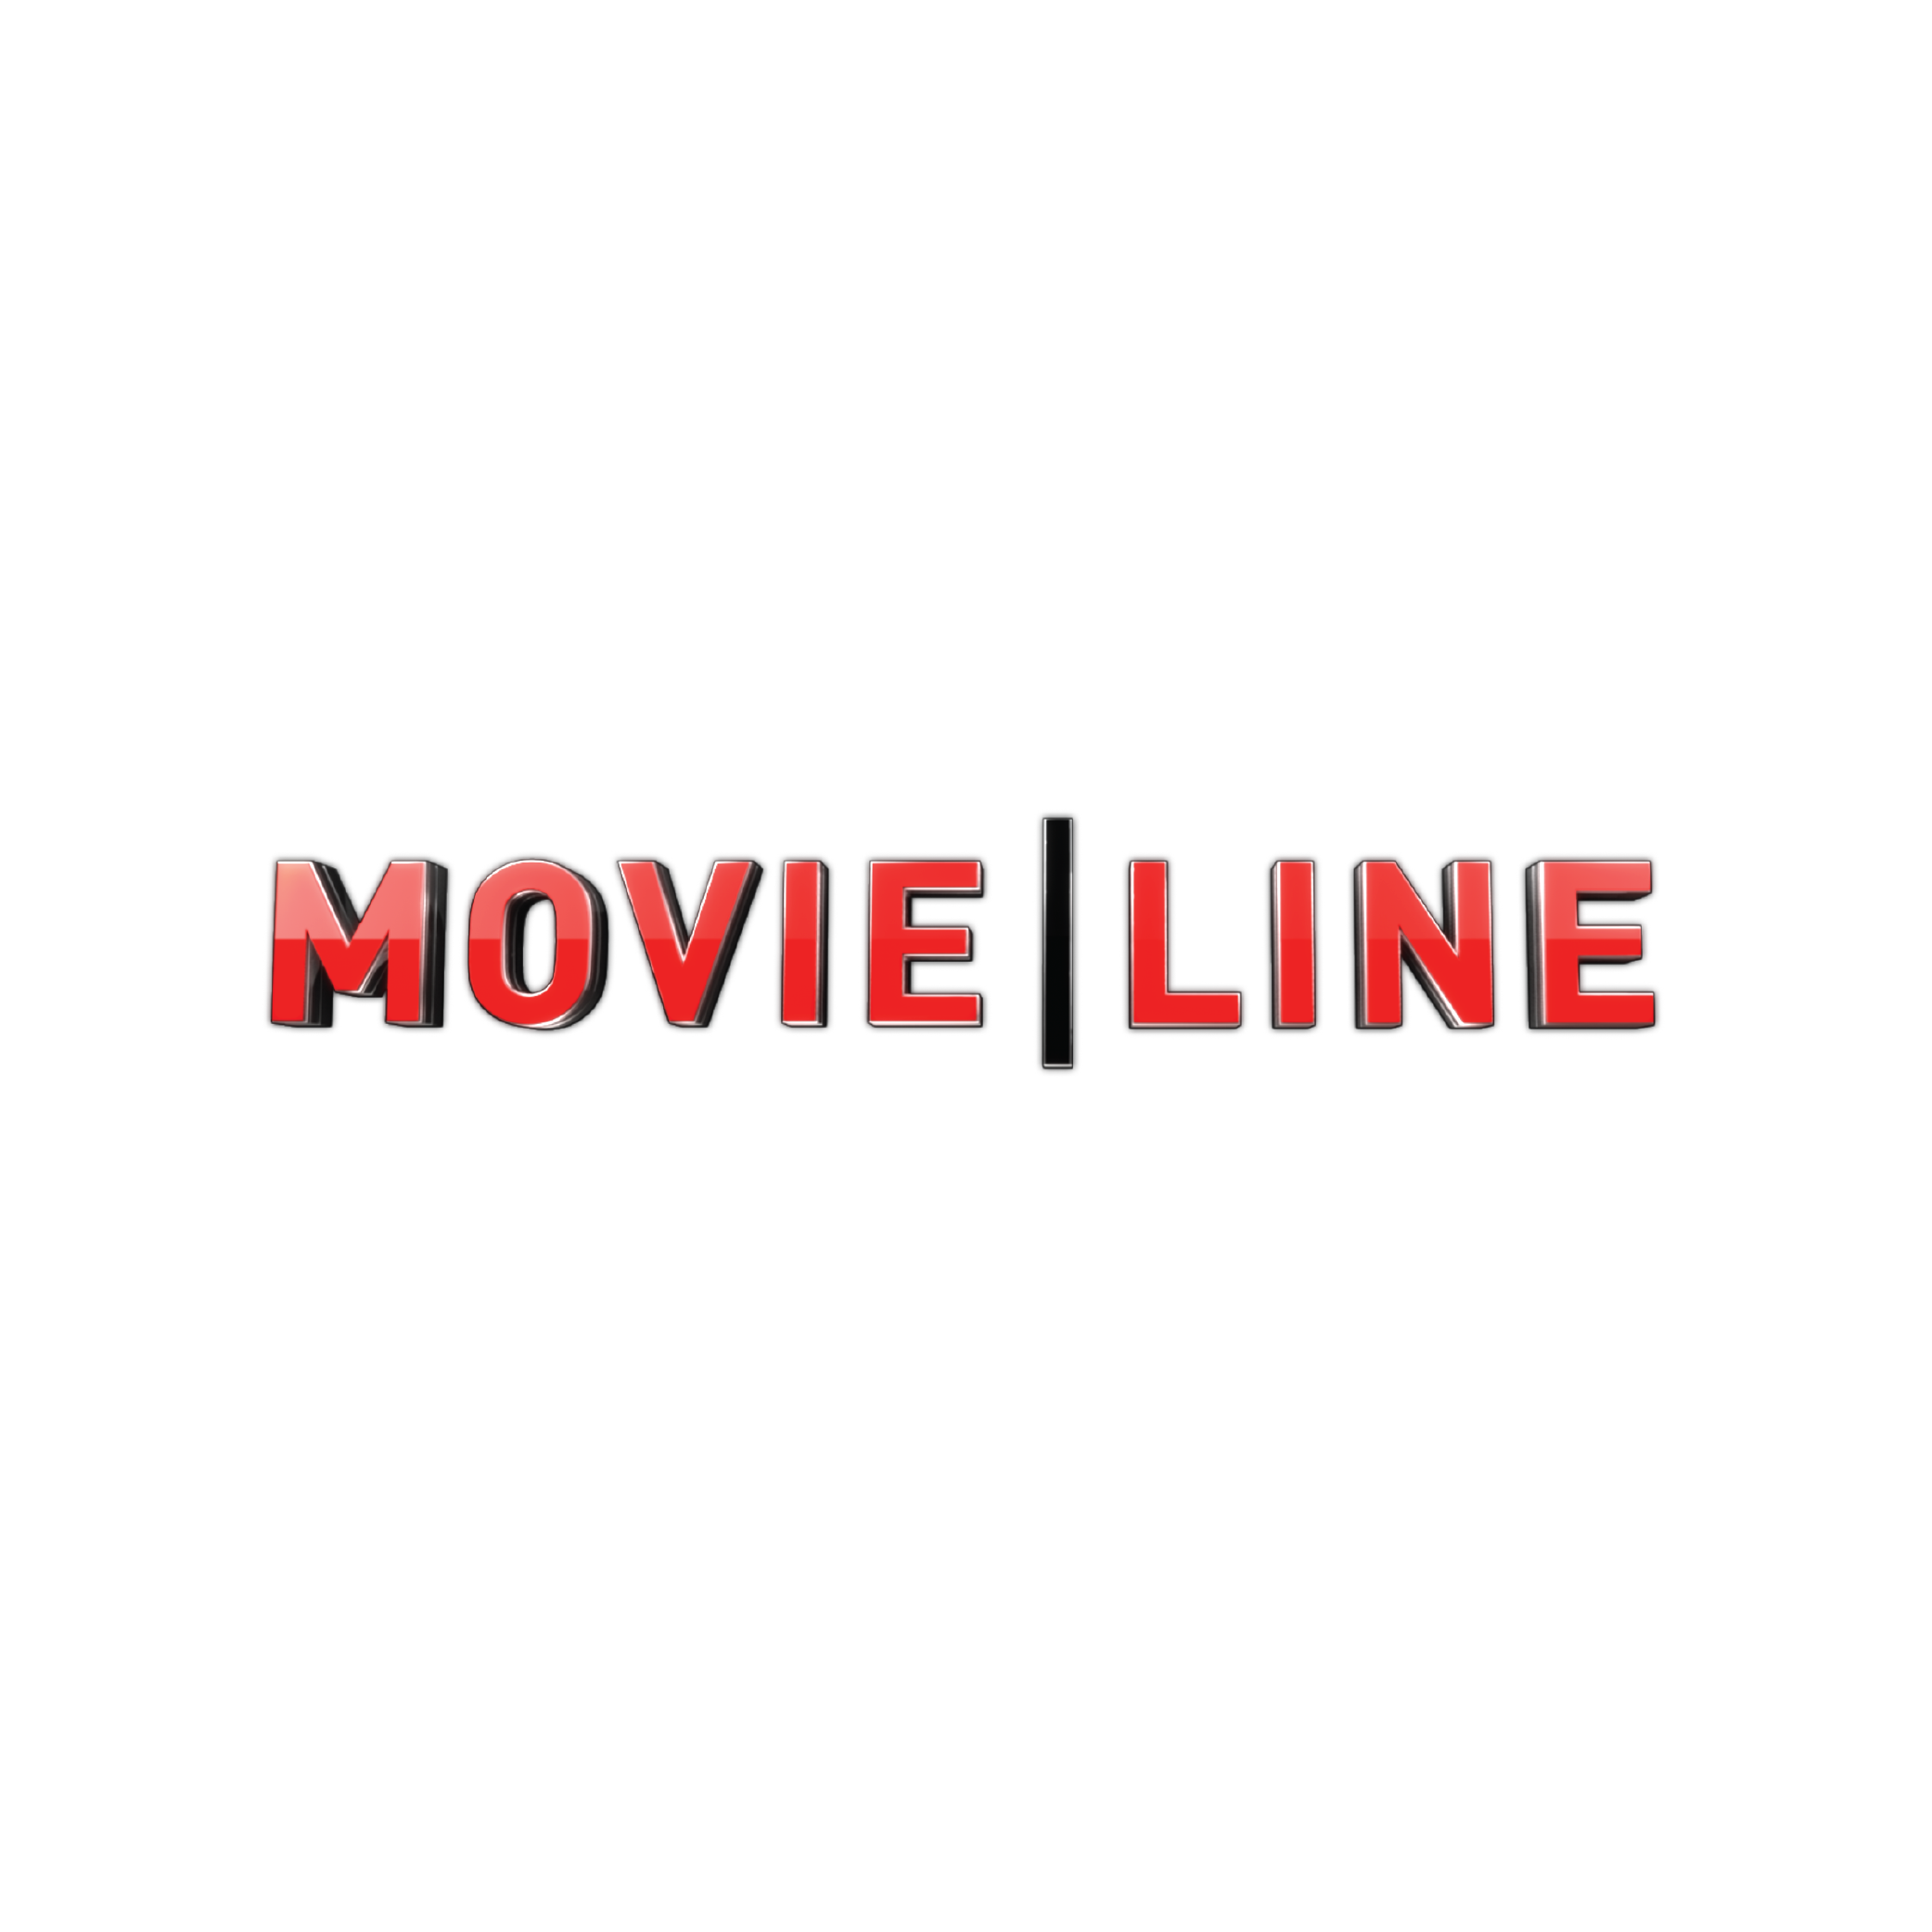 movieline.png